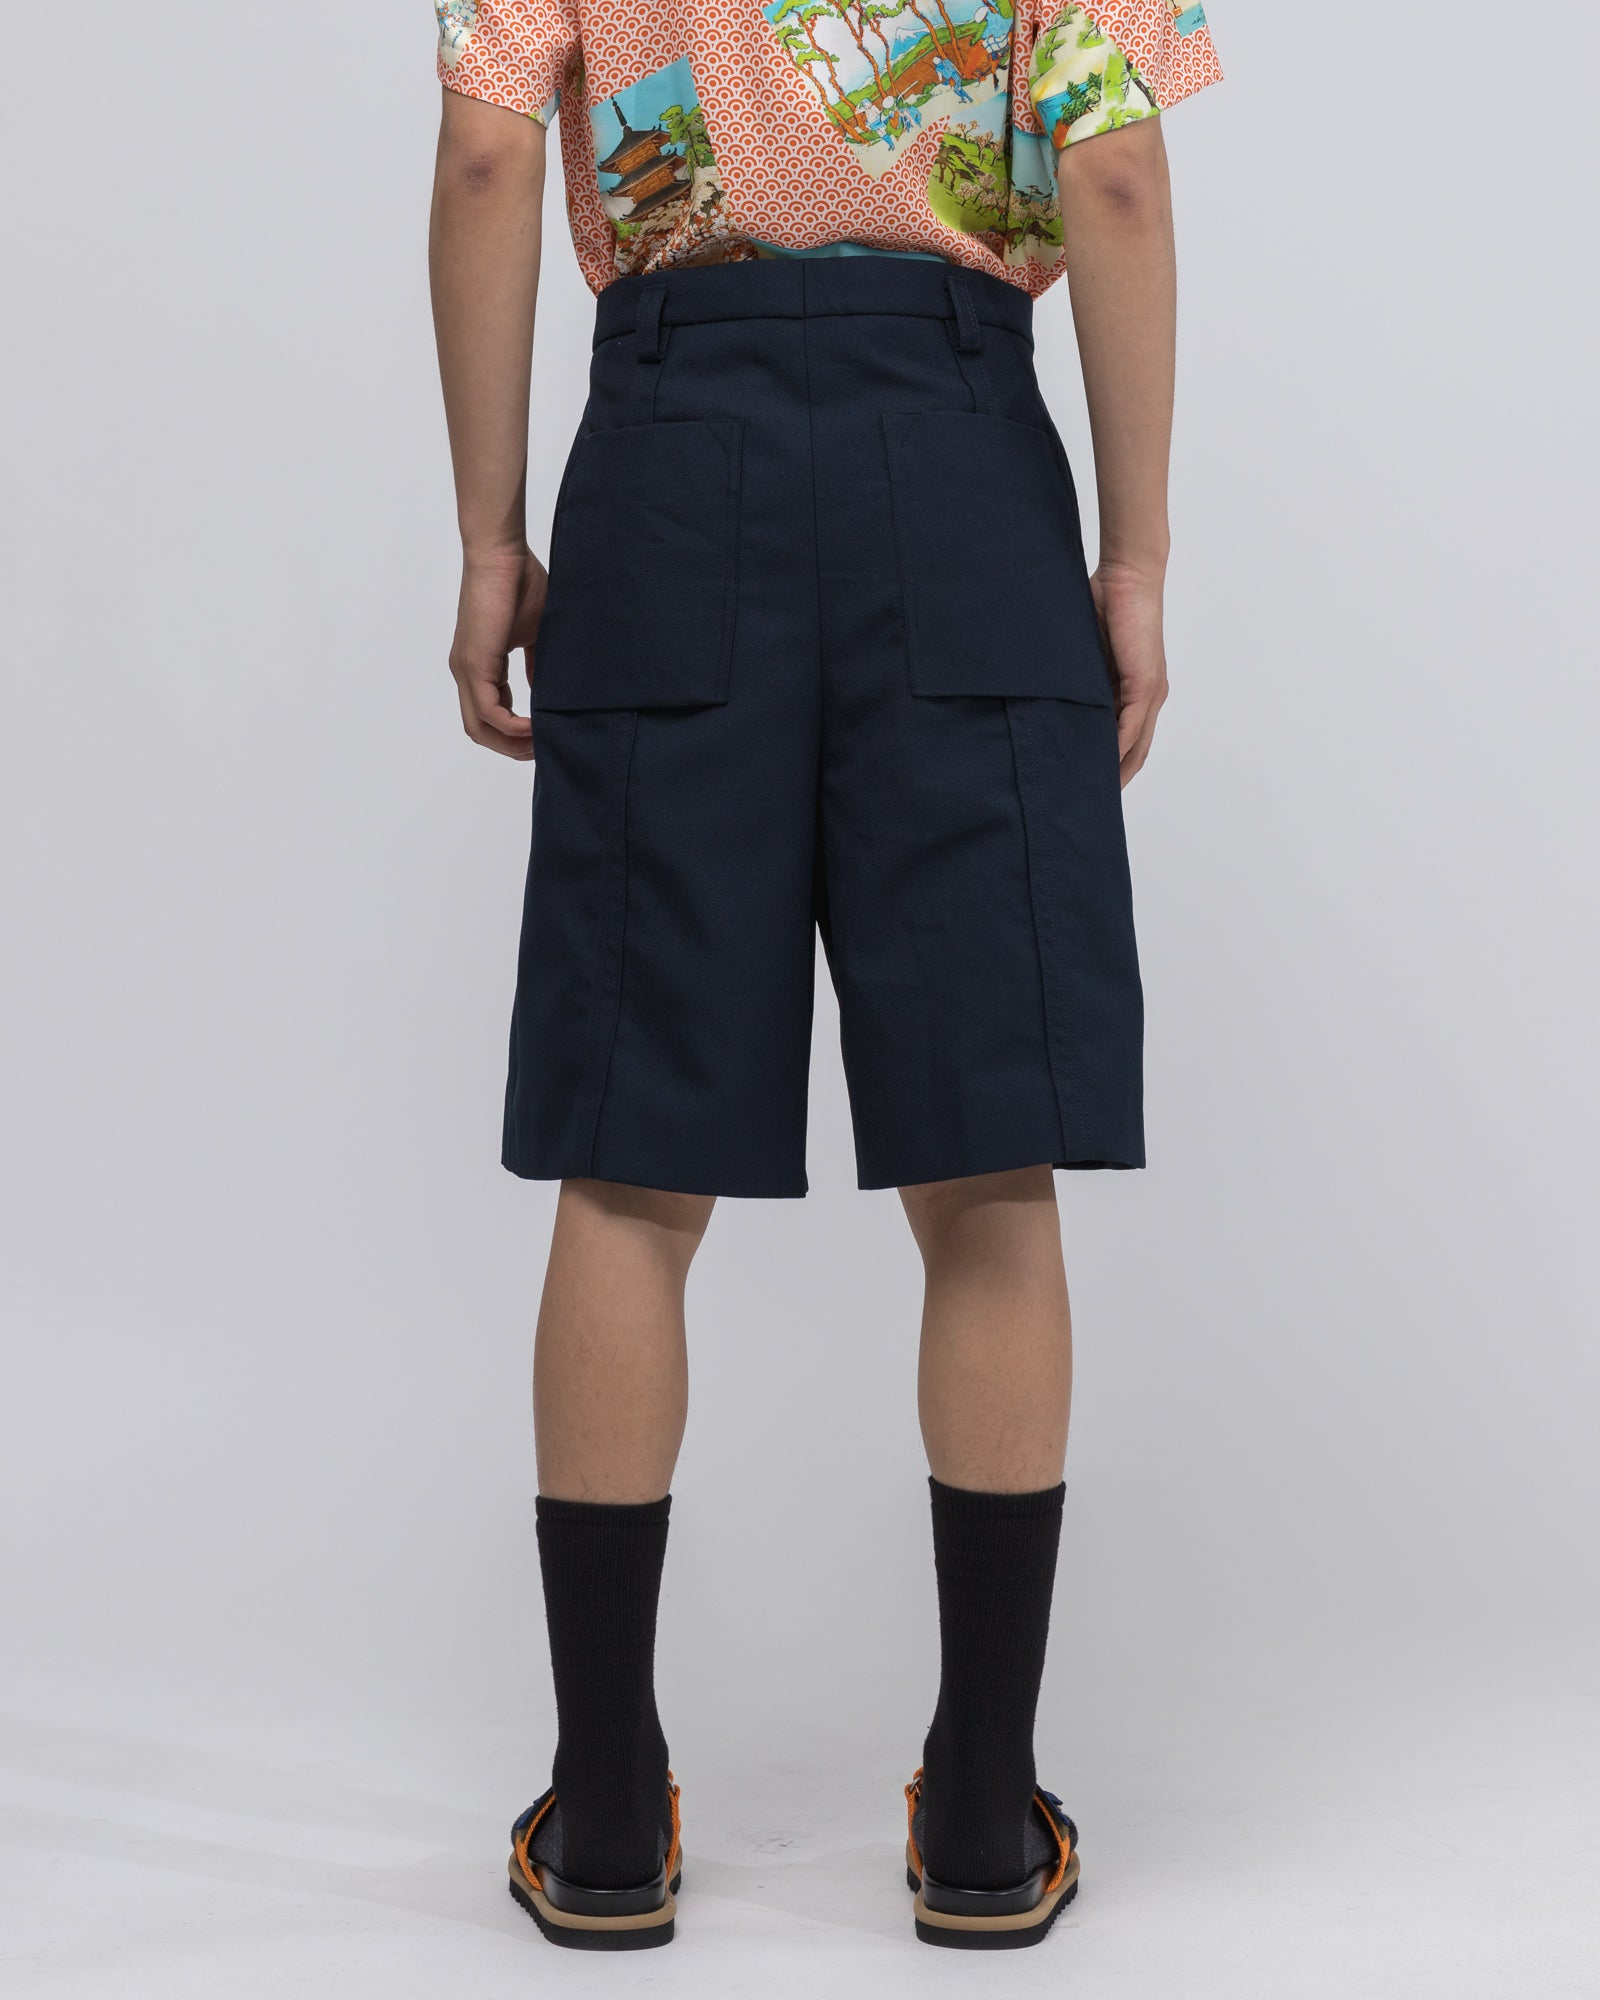 Steward Short in Dark Blue